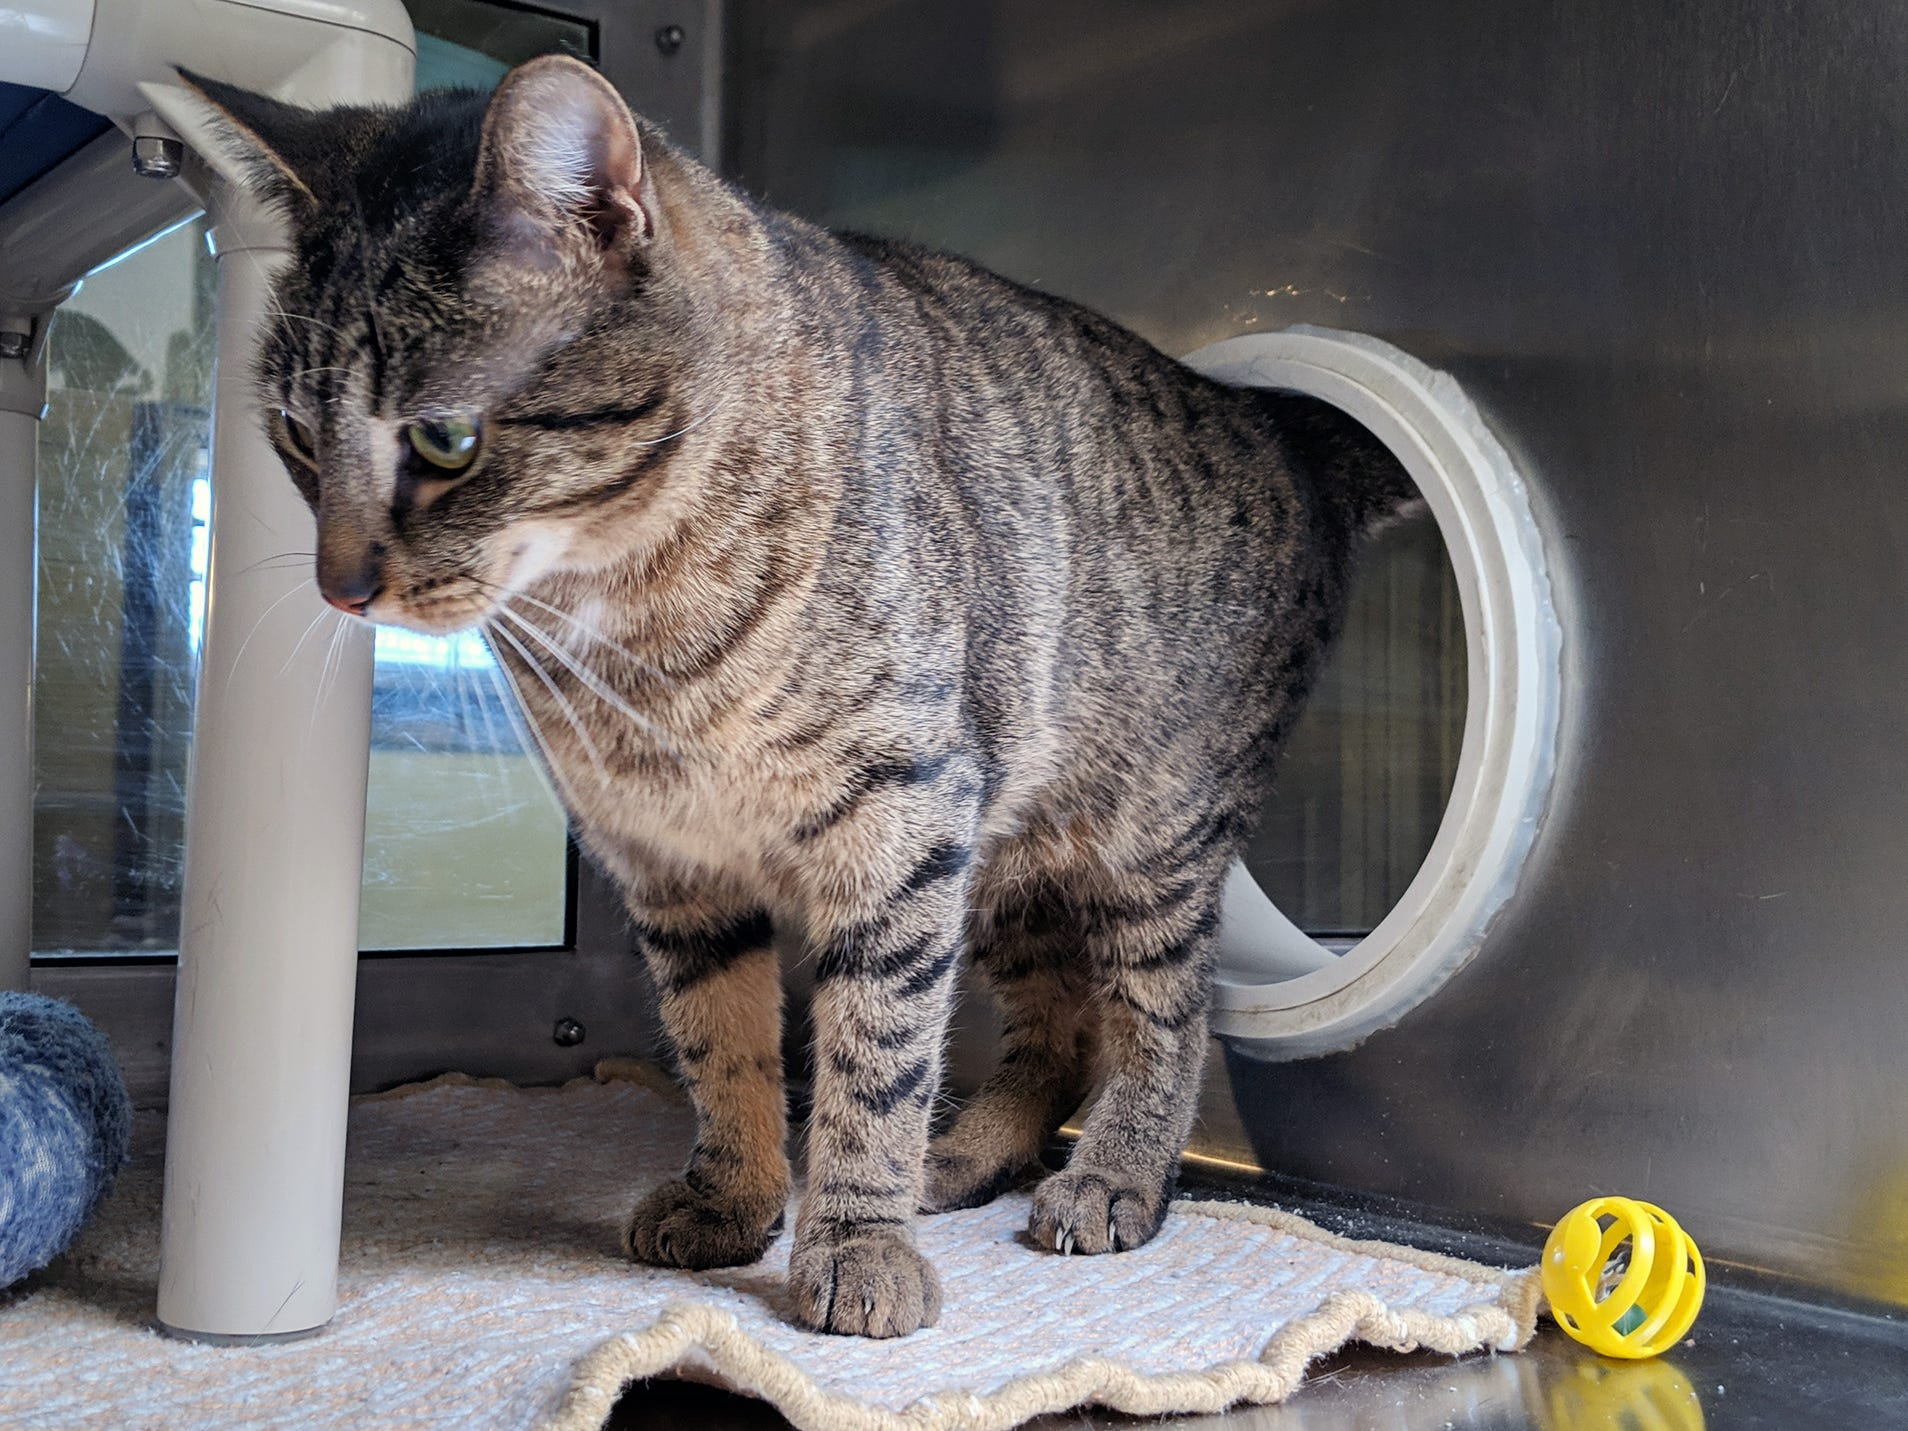 Norman is a 1-year-old brown tabby who was found on Little John Road in North Codorus Township as a stray. He is available for adoption at the York County SPCA Tuesday February 26, 2019.